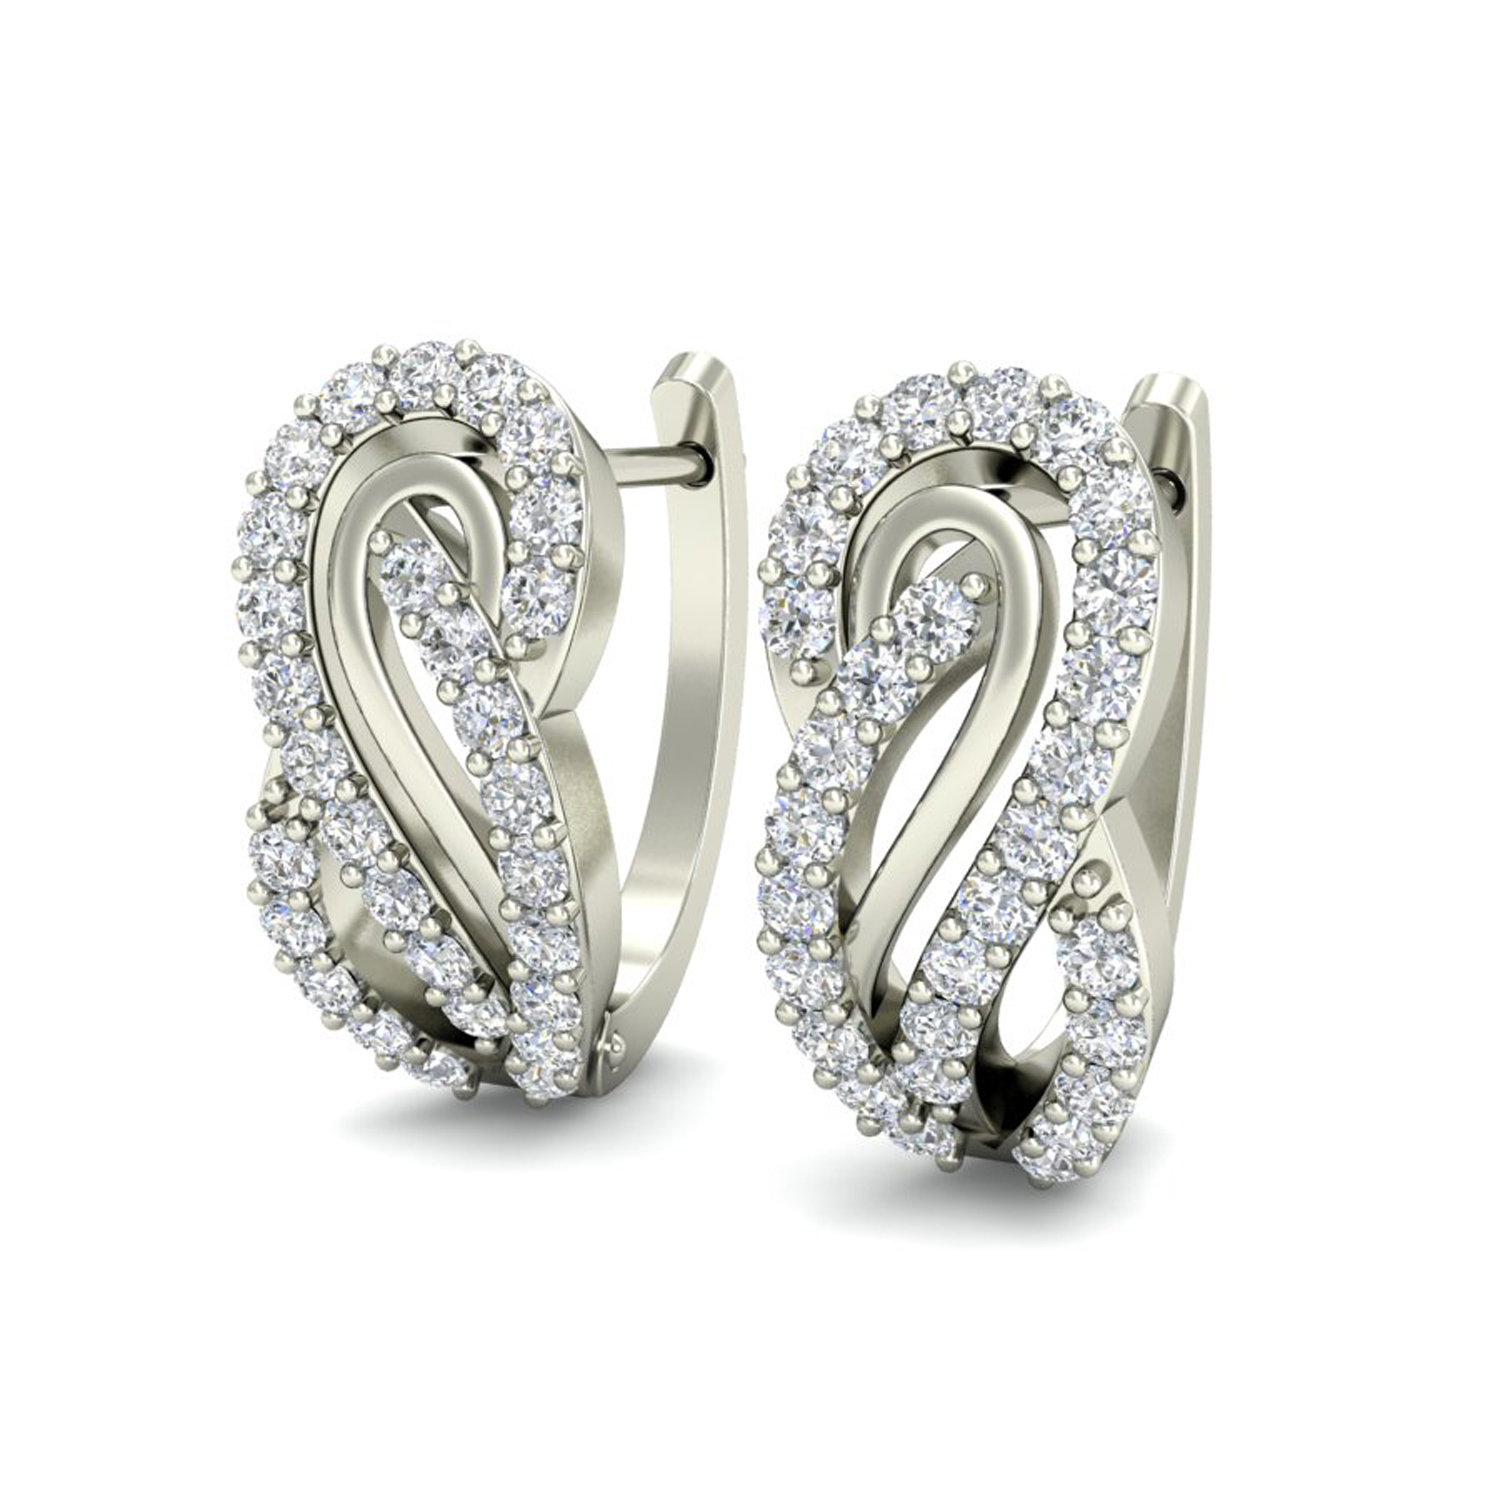 Ct Gold And Diamond Earrings